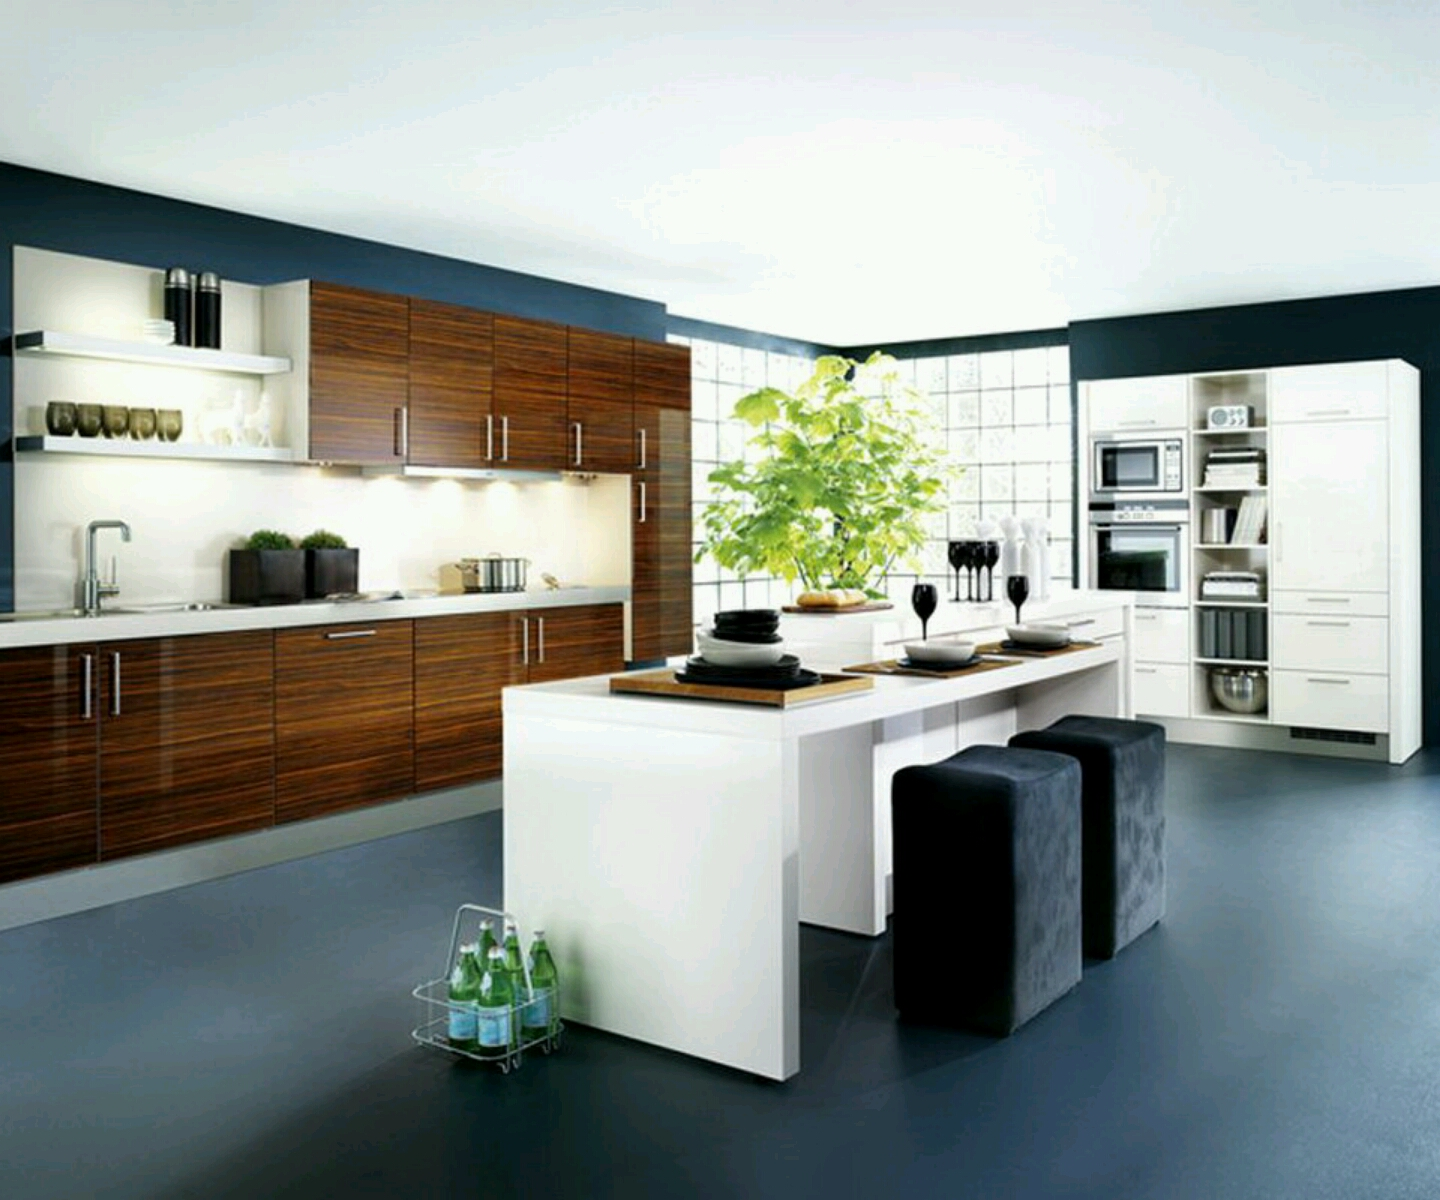 New home designs latest kitchen cabinets designs modern homes Kitchen design pictures modern